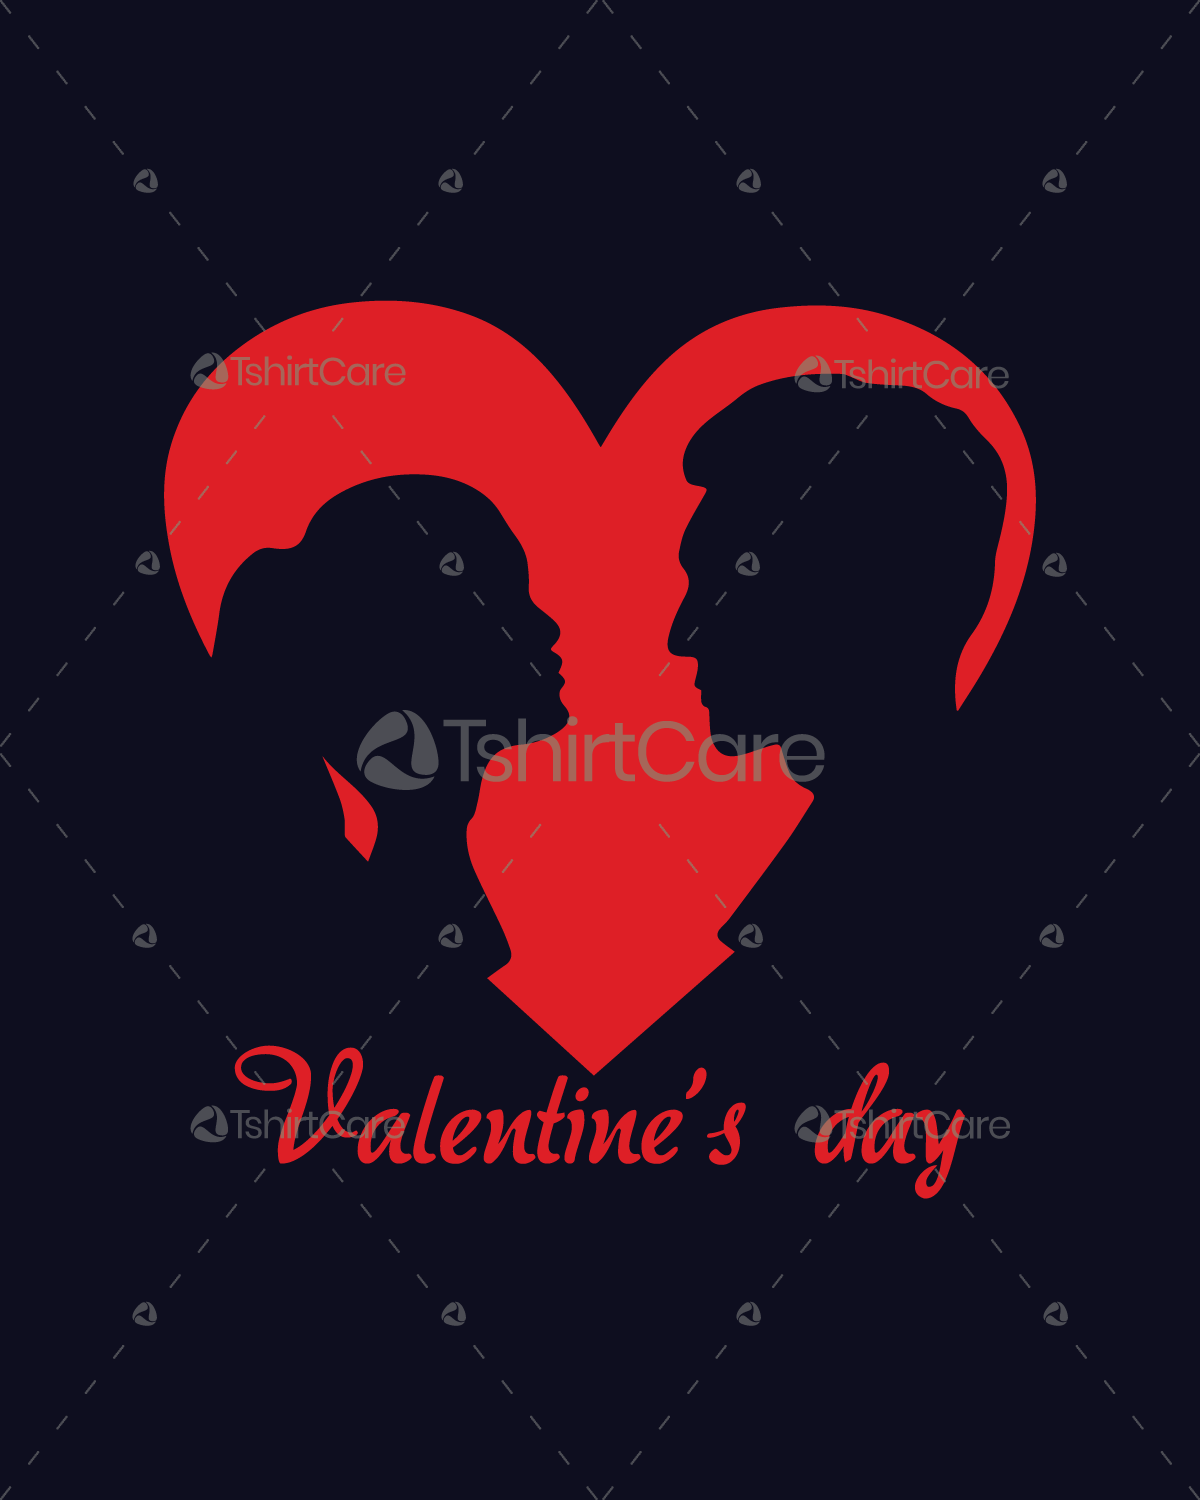 674f33bd3e Valentines Day Heart Love Couple T shirt Design for Event Boys ...